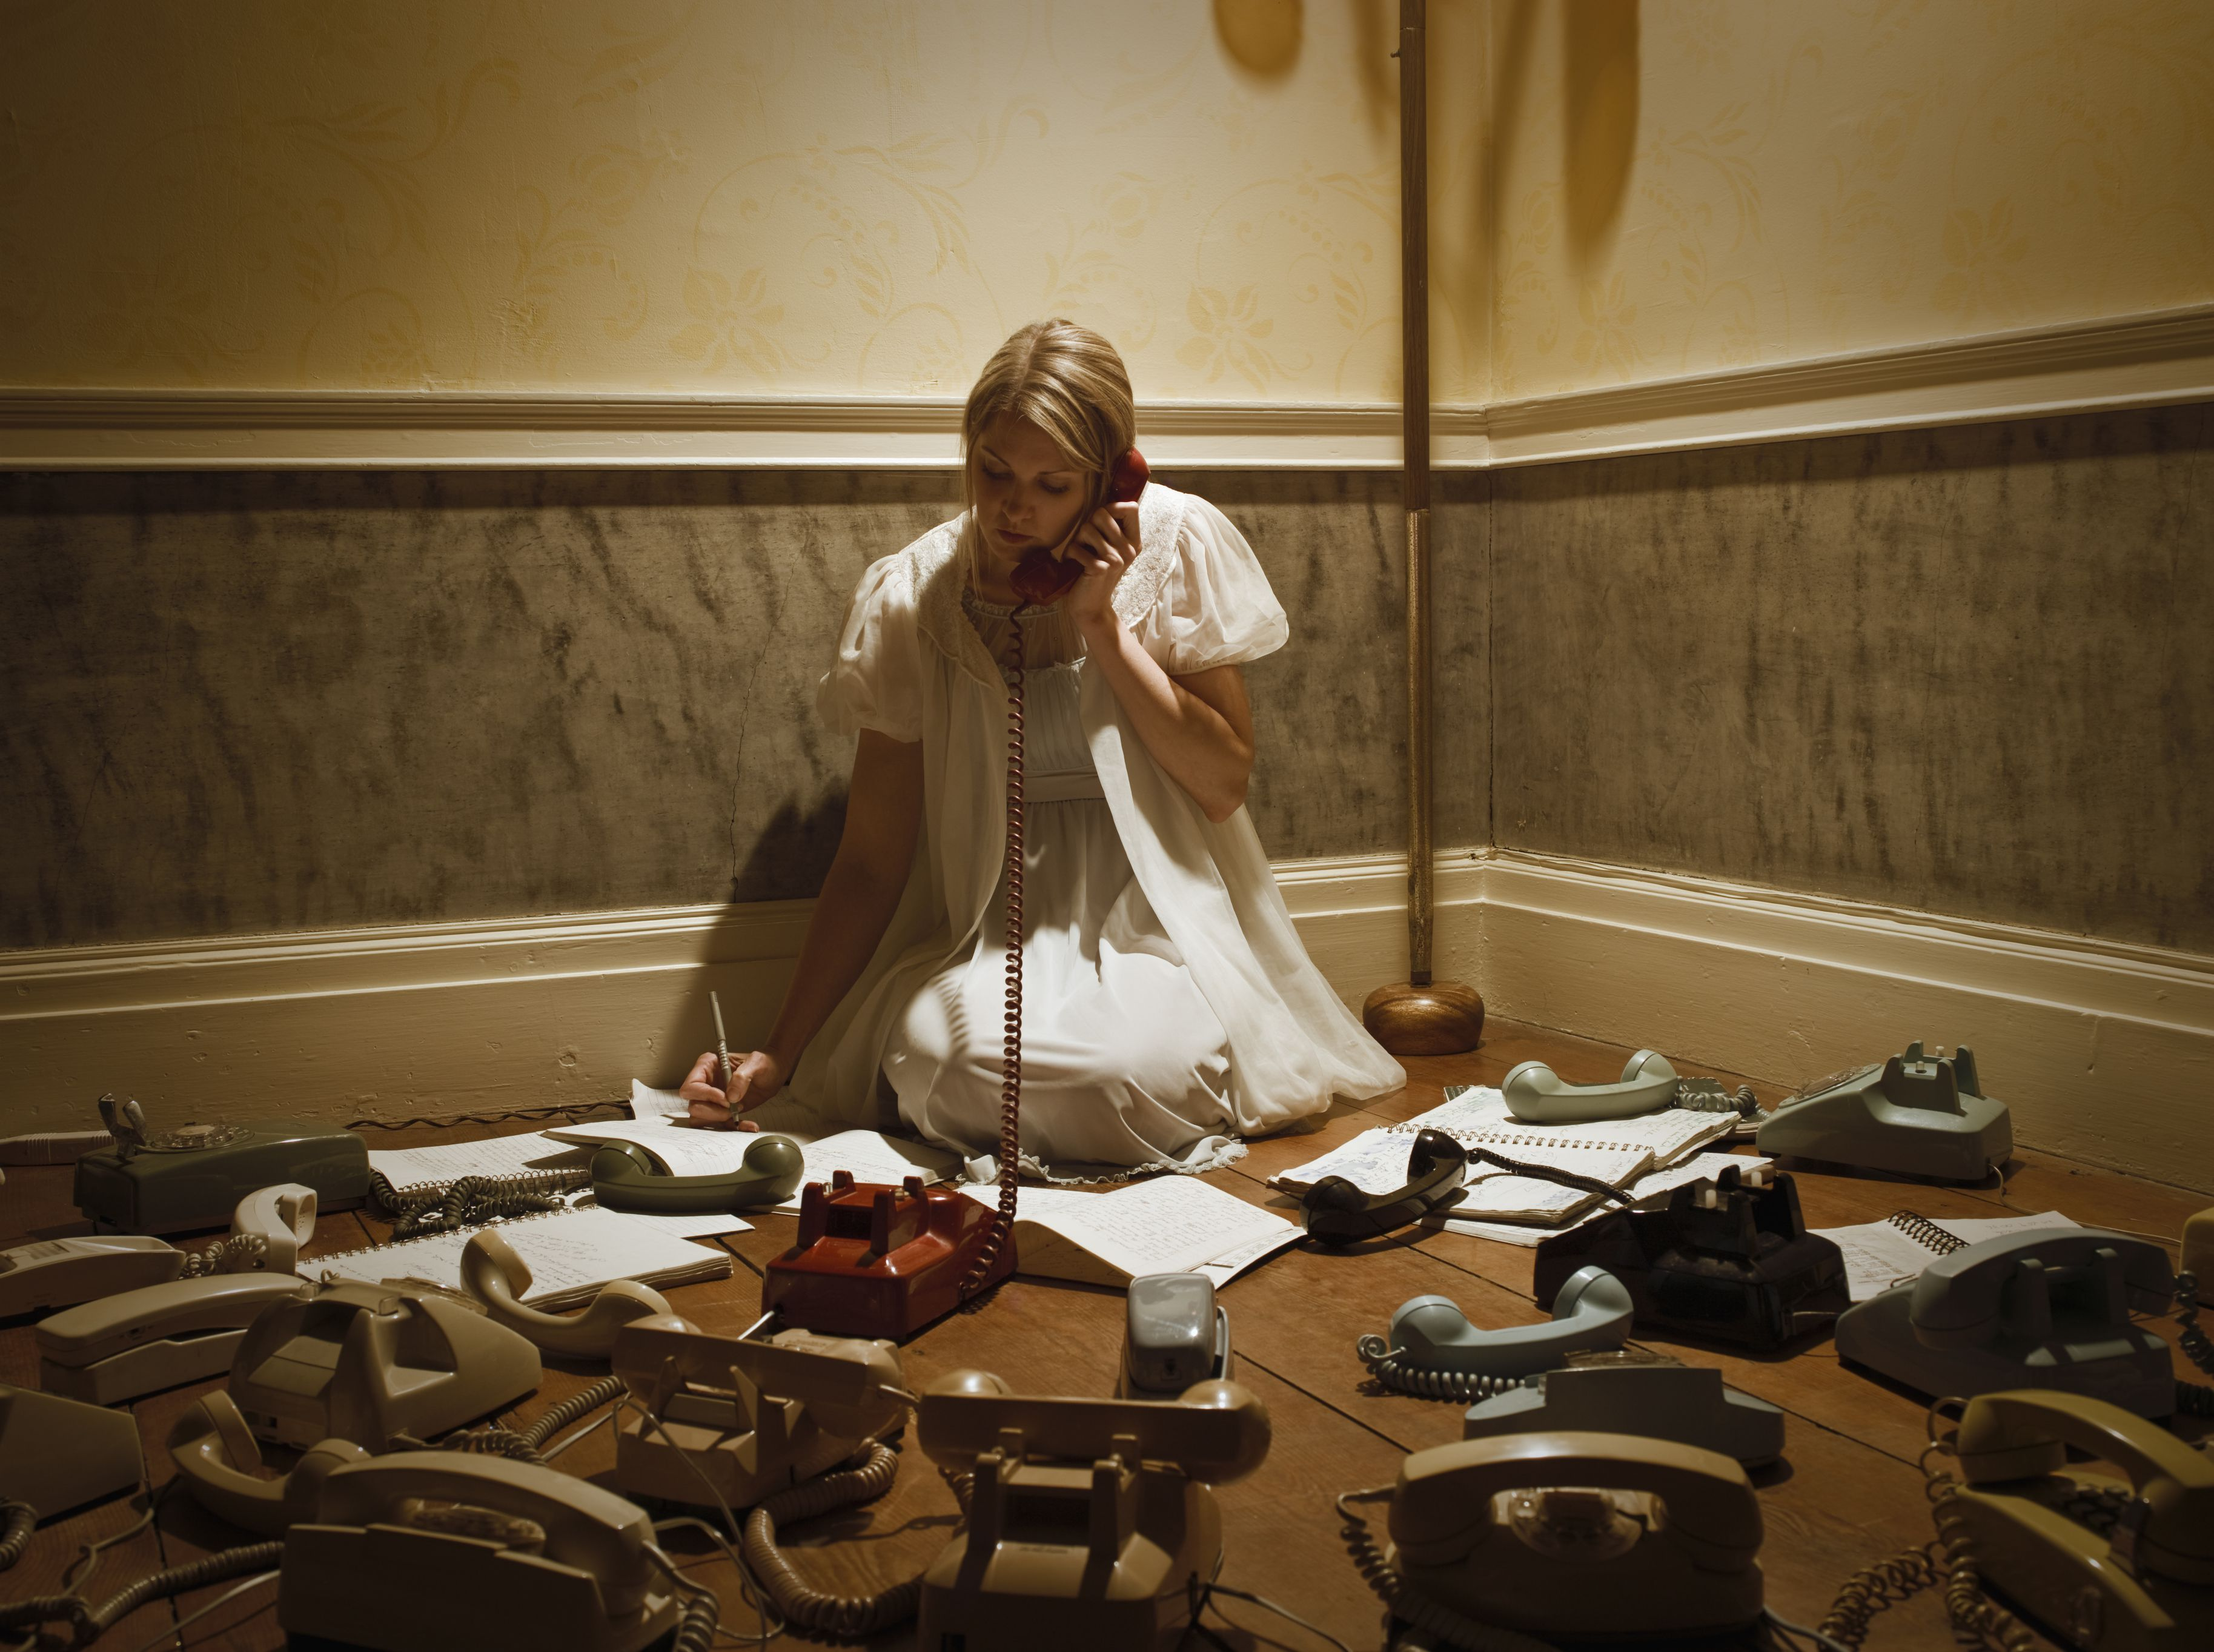 Woman surrounded by telephones